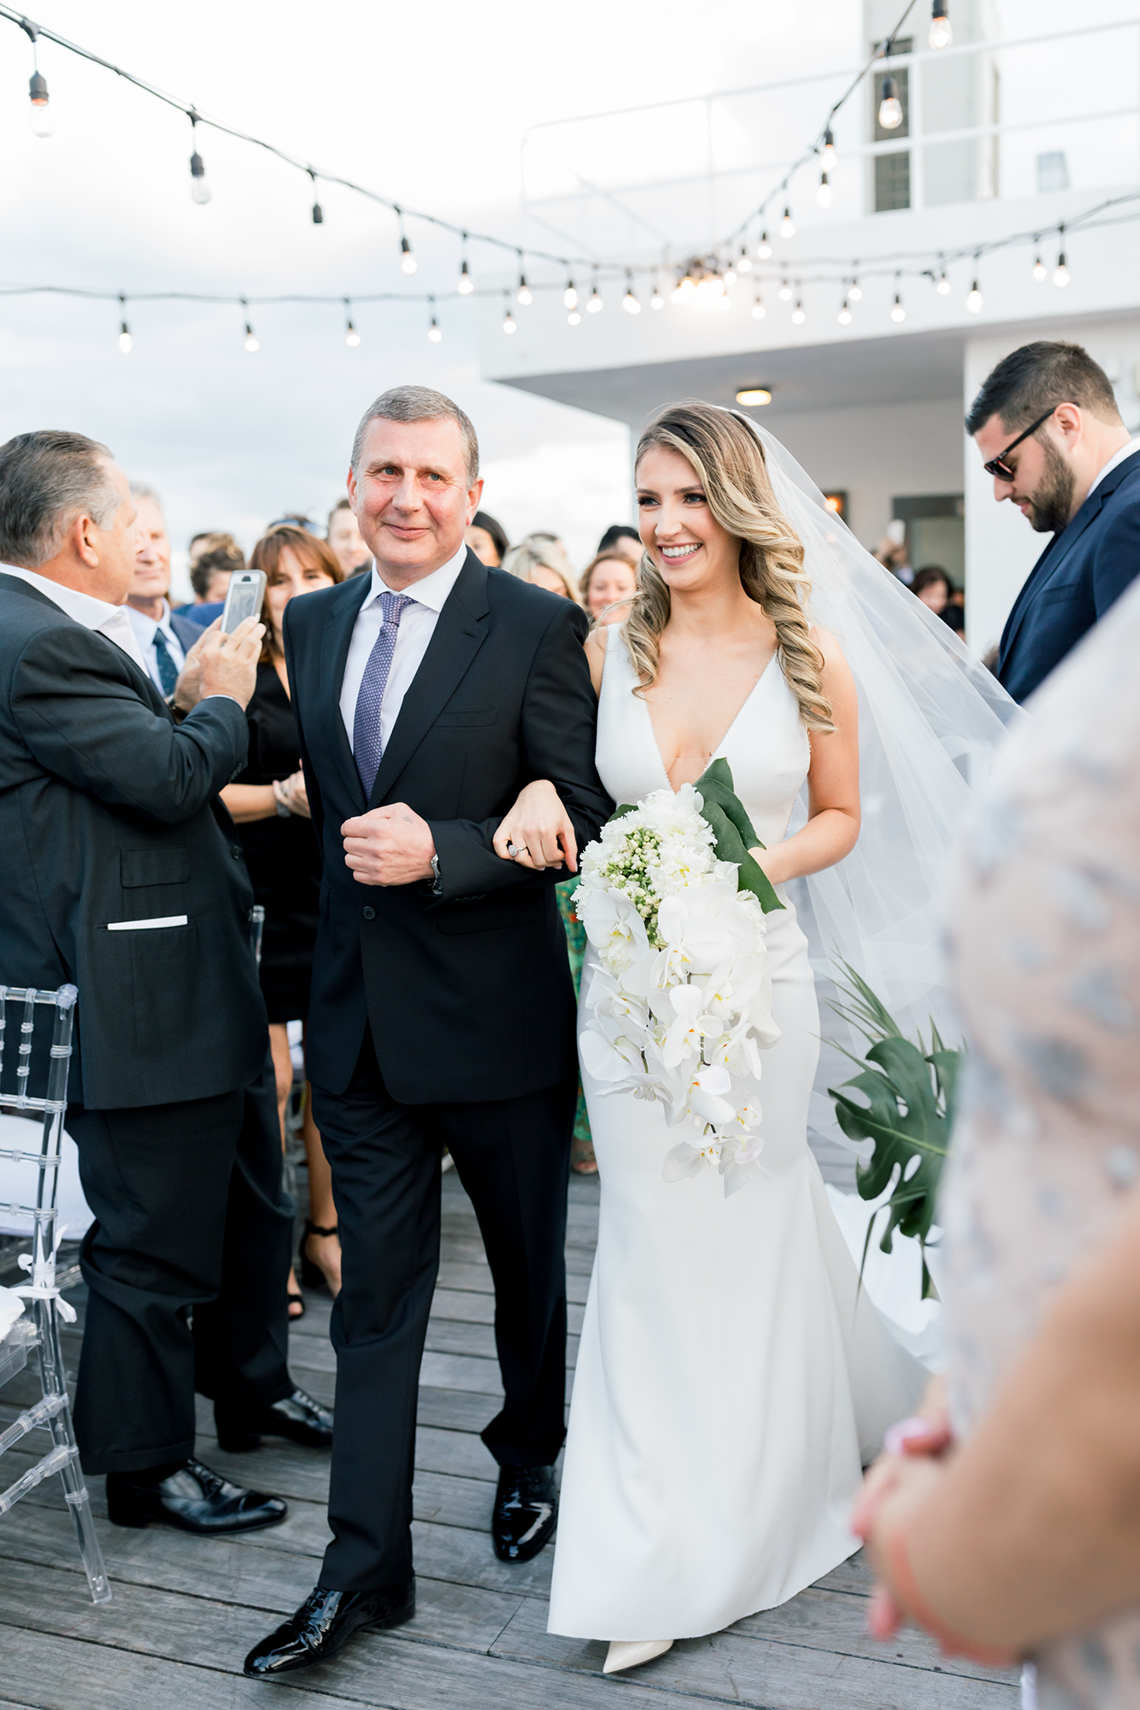 Modern Luxury Rooftop Wedding in Miami Beach – Erica Melissa Photography 31